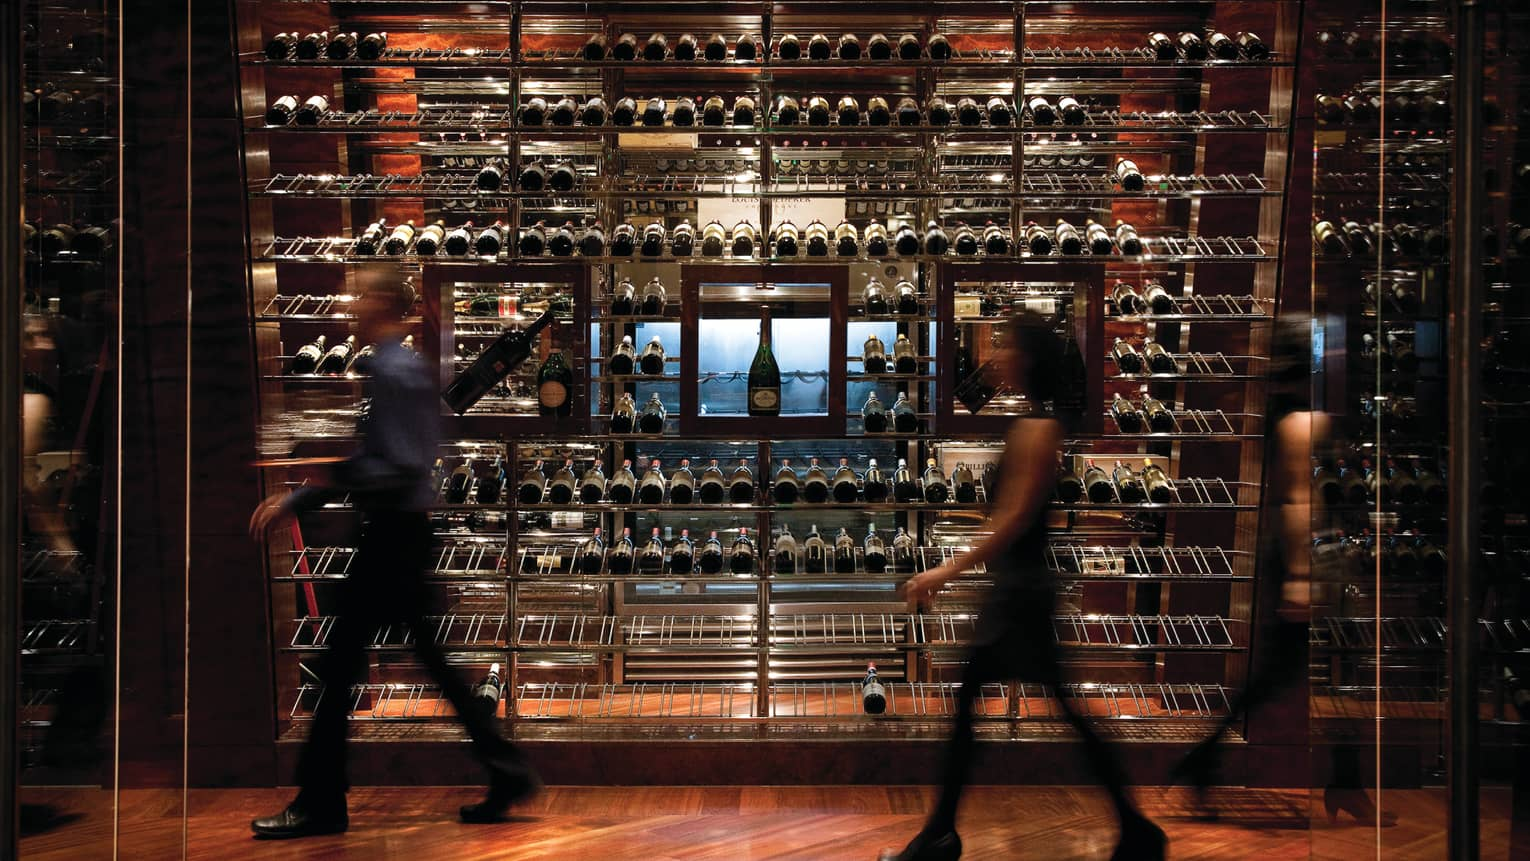 Man and woman walk by dark wine cellar display wall